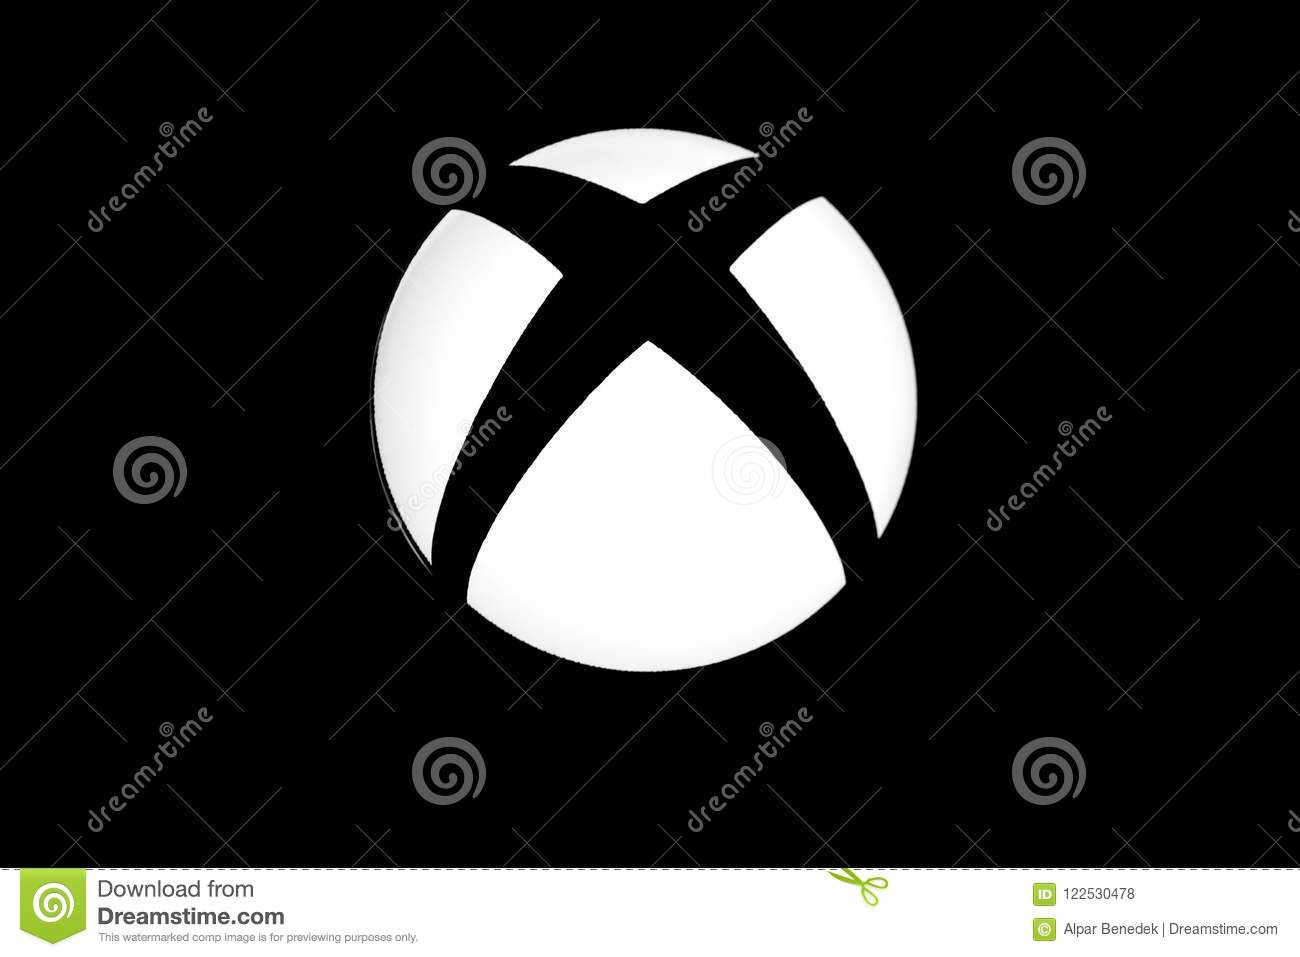 Xbox one video game logo close up shot in black and white.